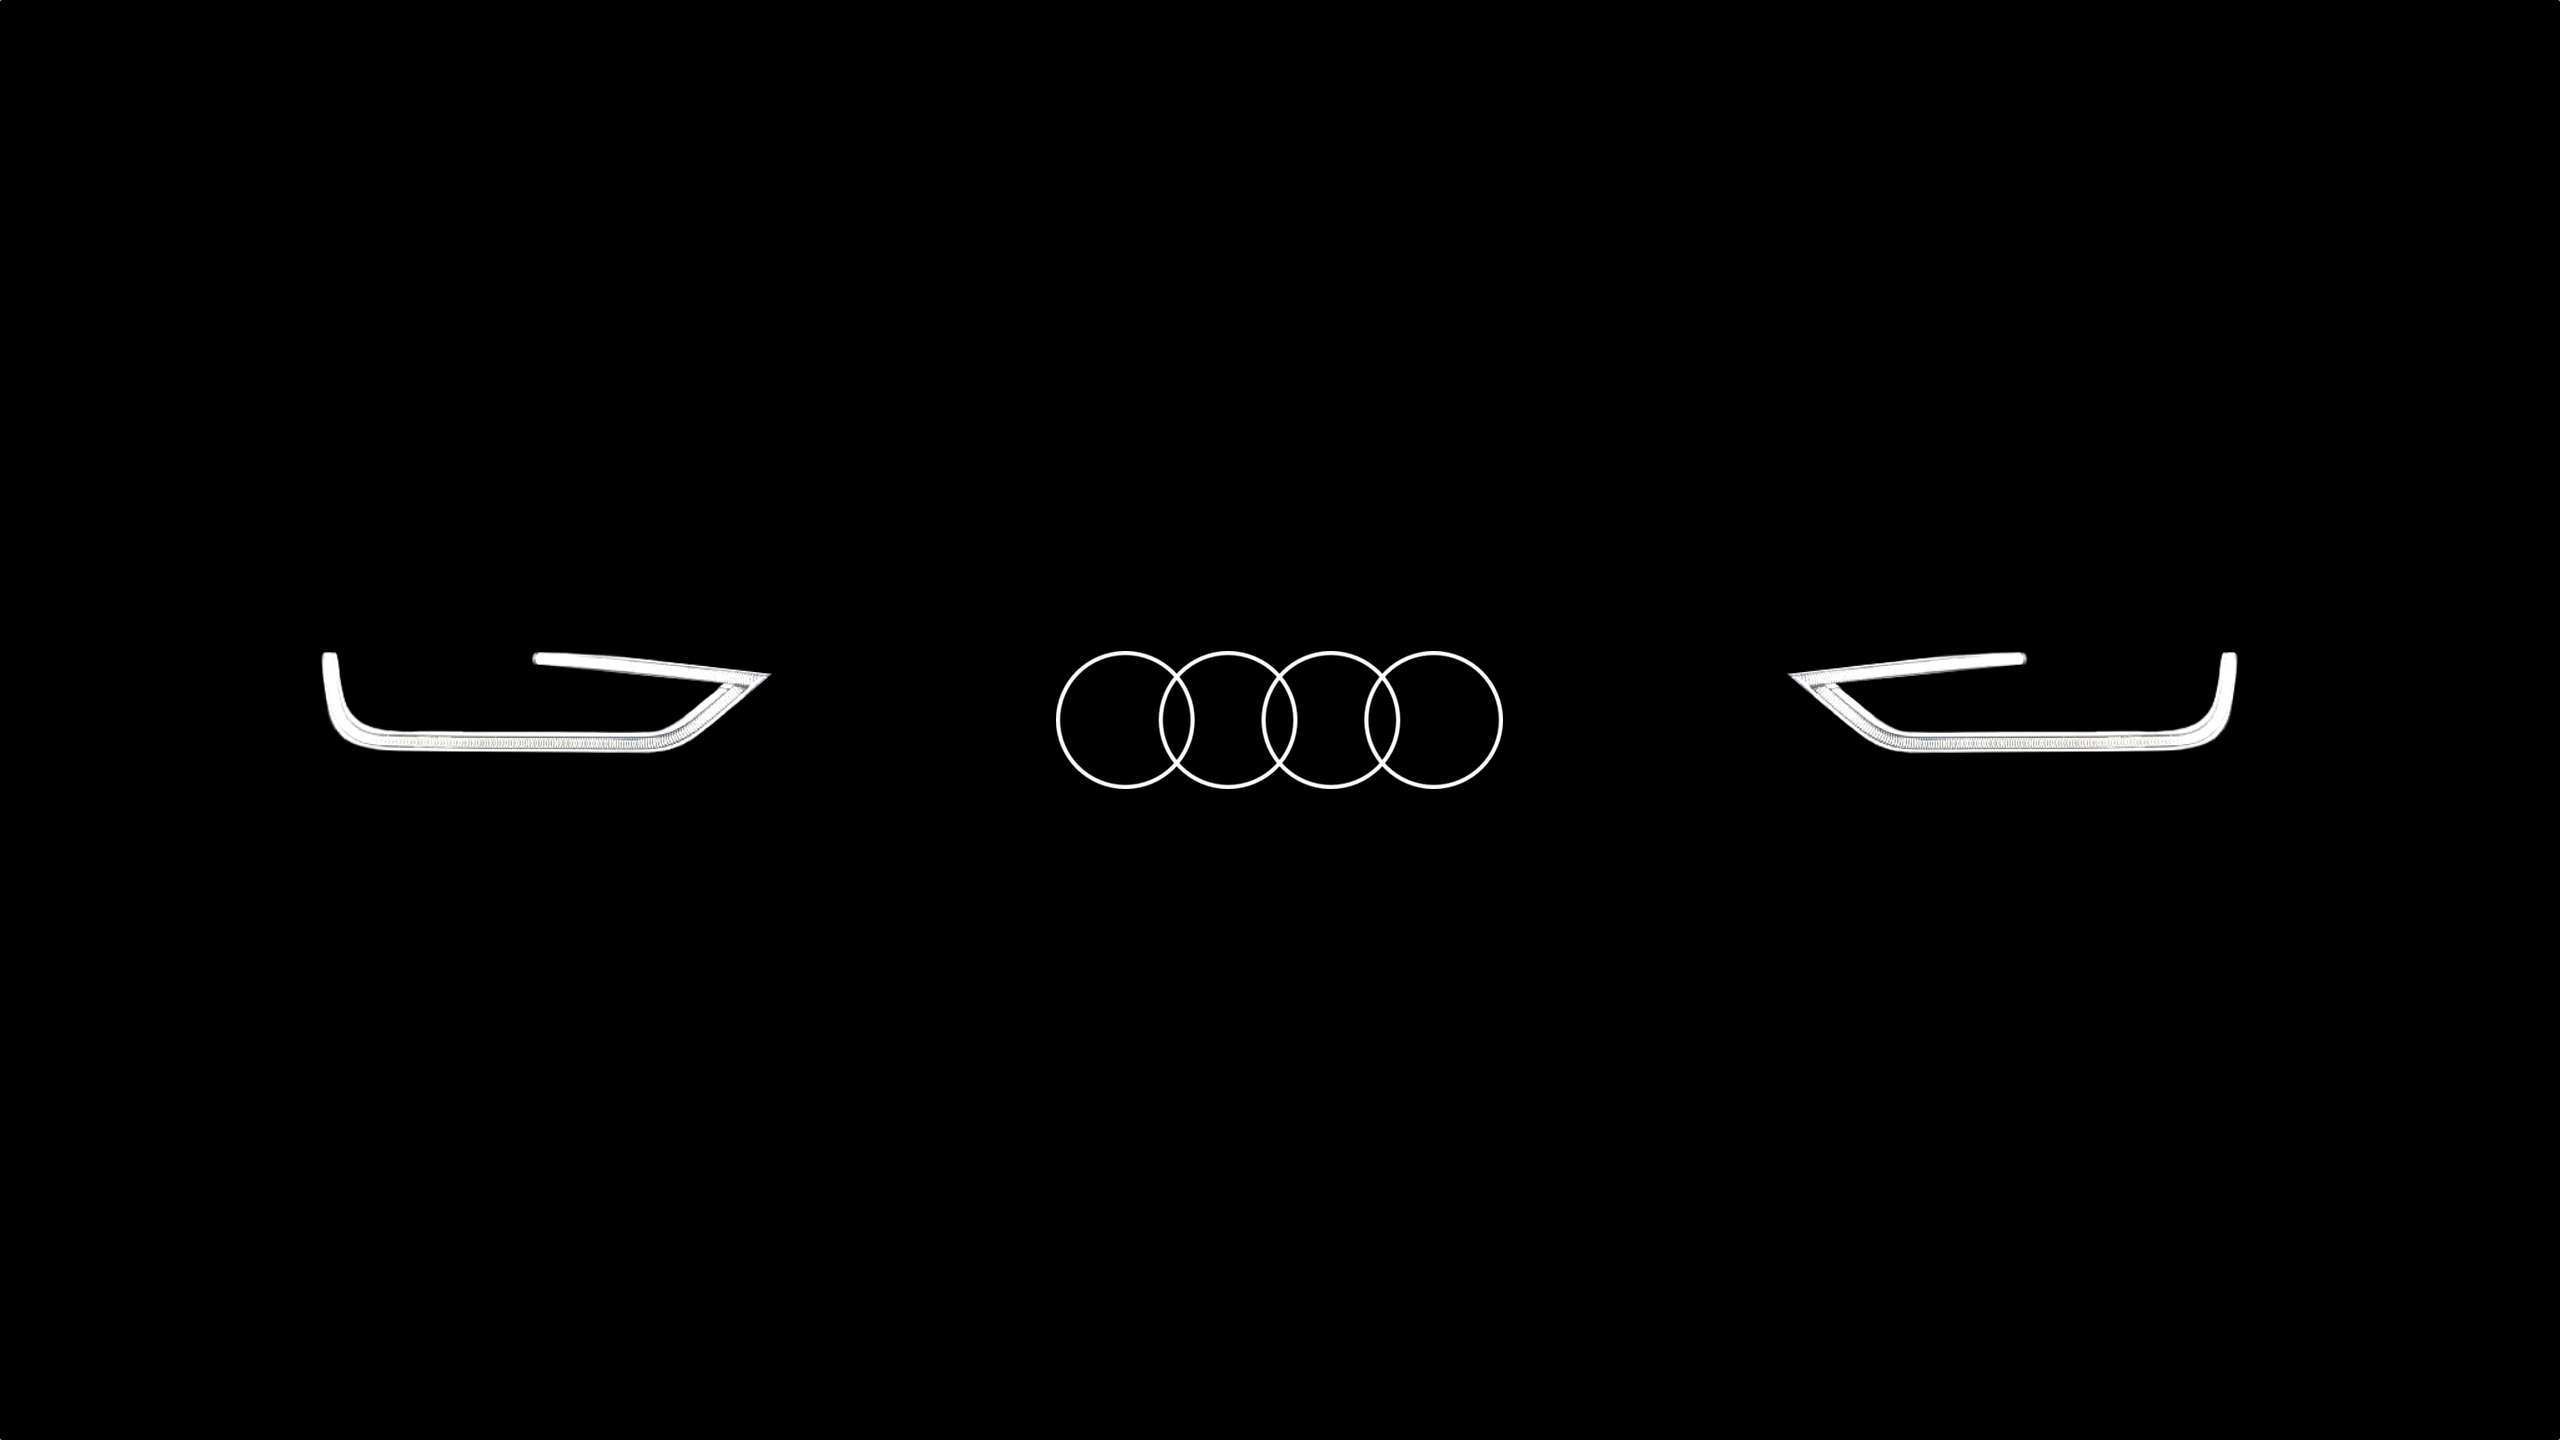 Audi Wallpapers Iphone Free Download Sports Car Full Hd Cars For ...